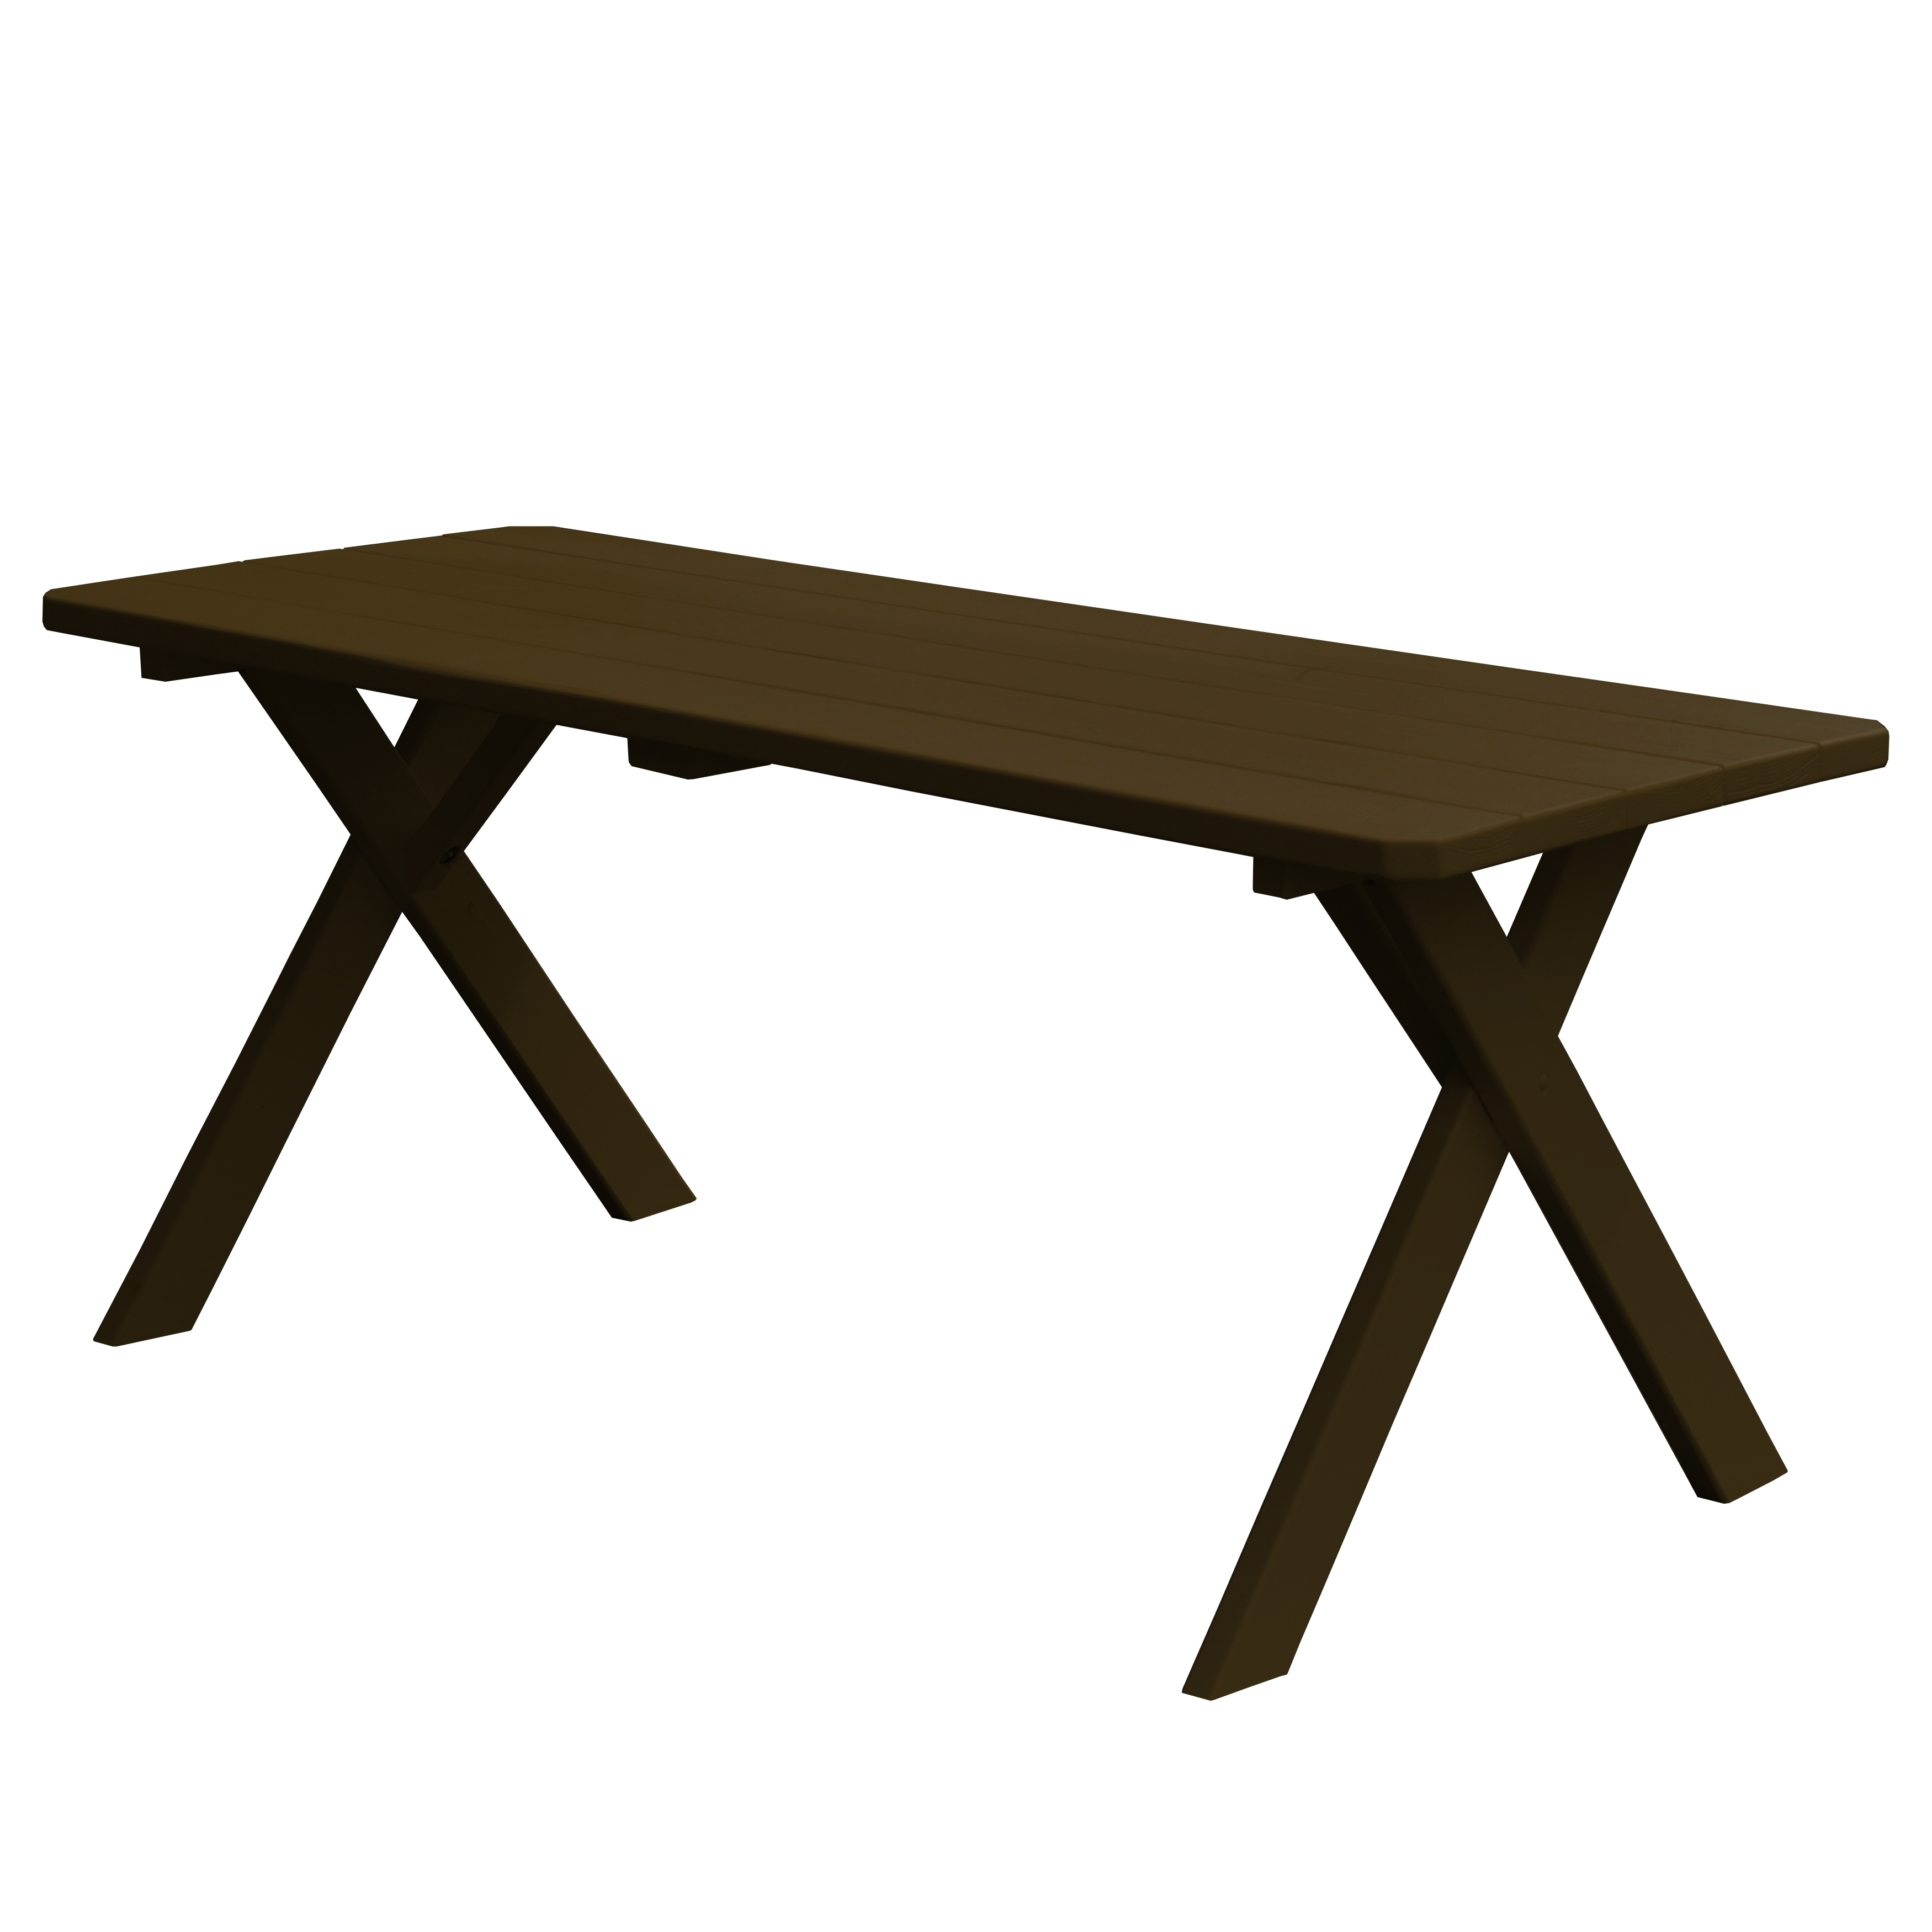 Image of 4 foot Cross-leg Wooden Table